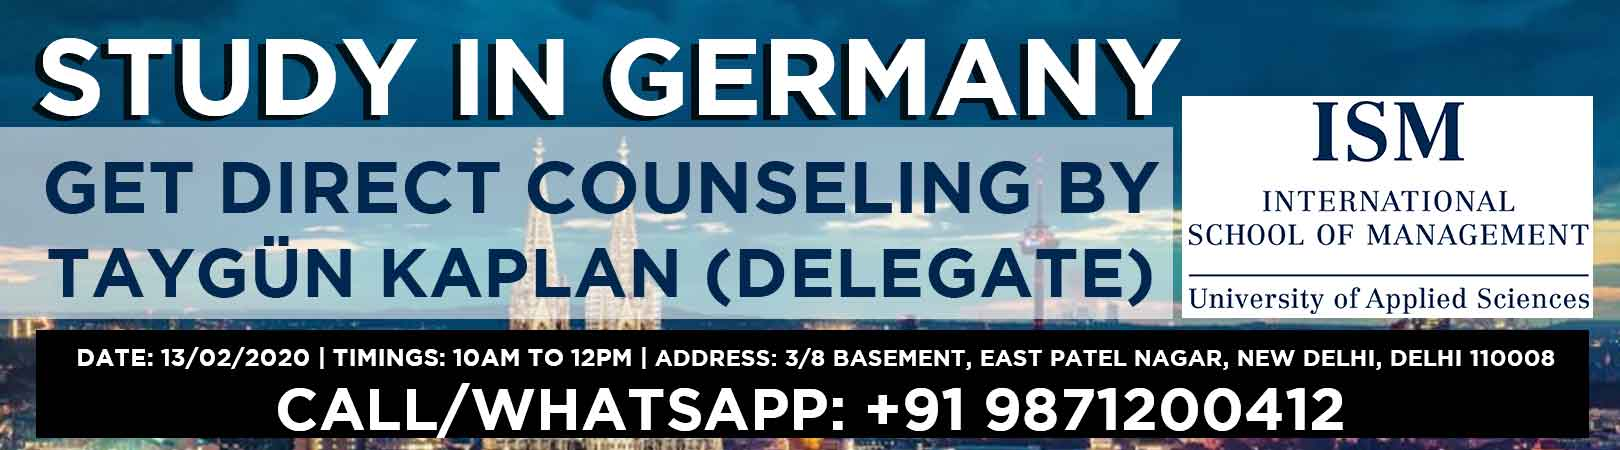 Study in Germany - Get counseling by Taygün Kaplan, ISM International School of Management